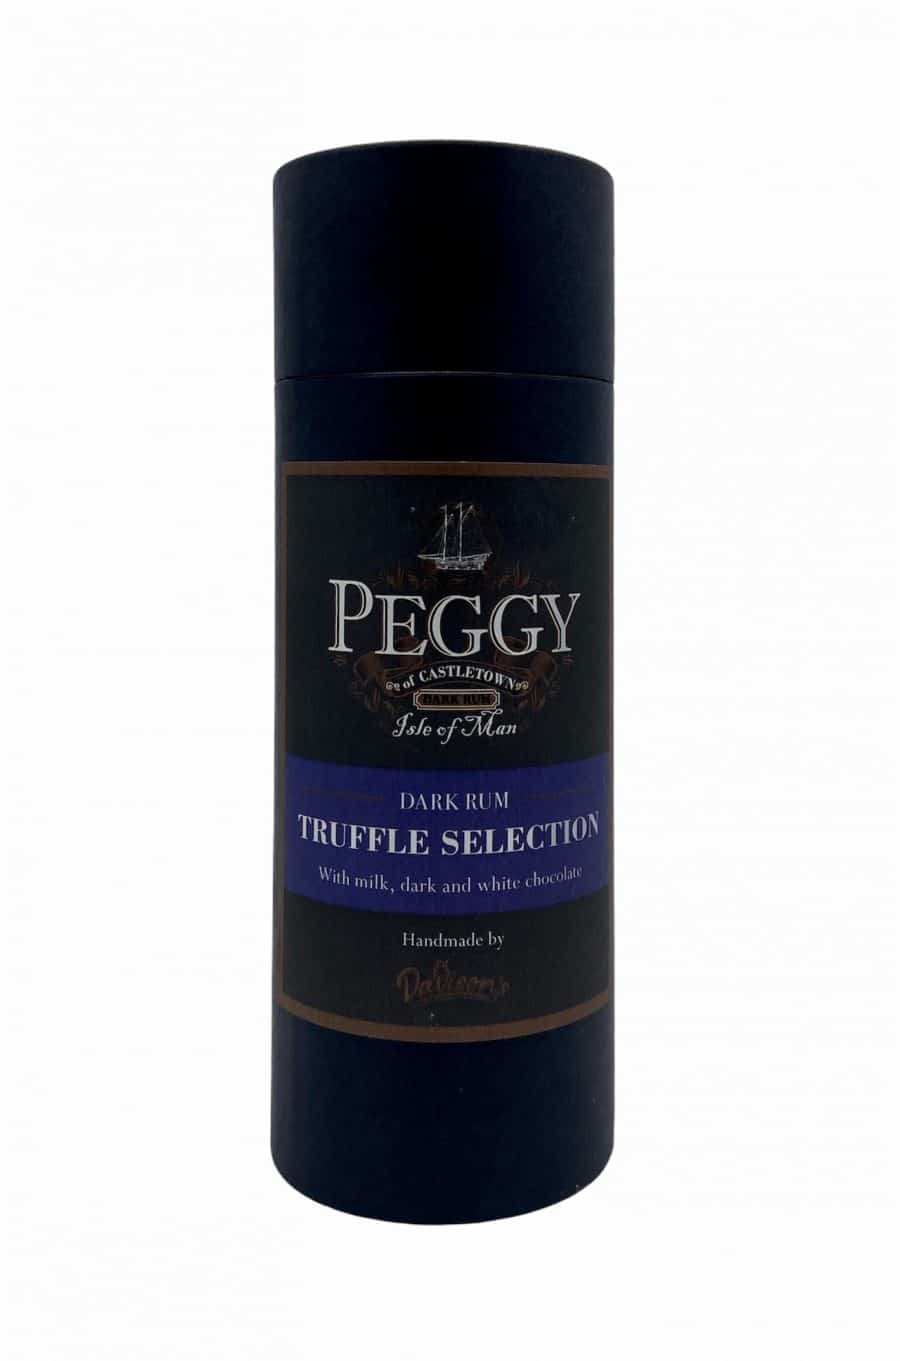 Peggy Rum - Truffle Selection